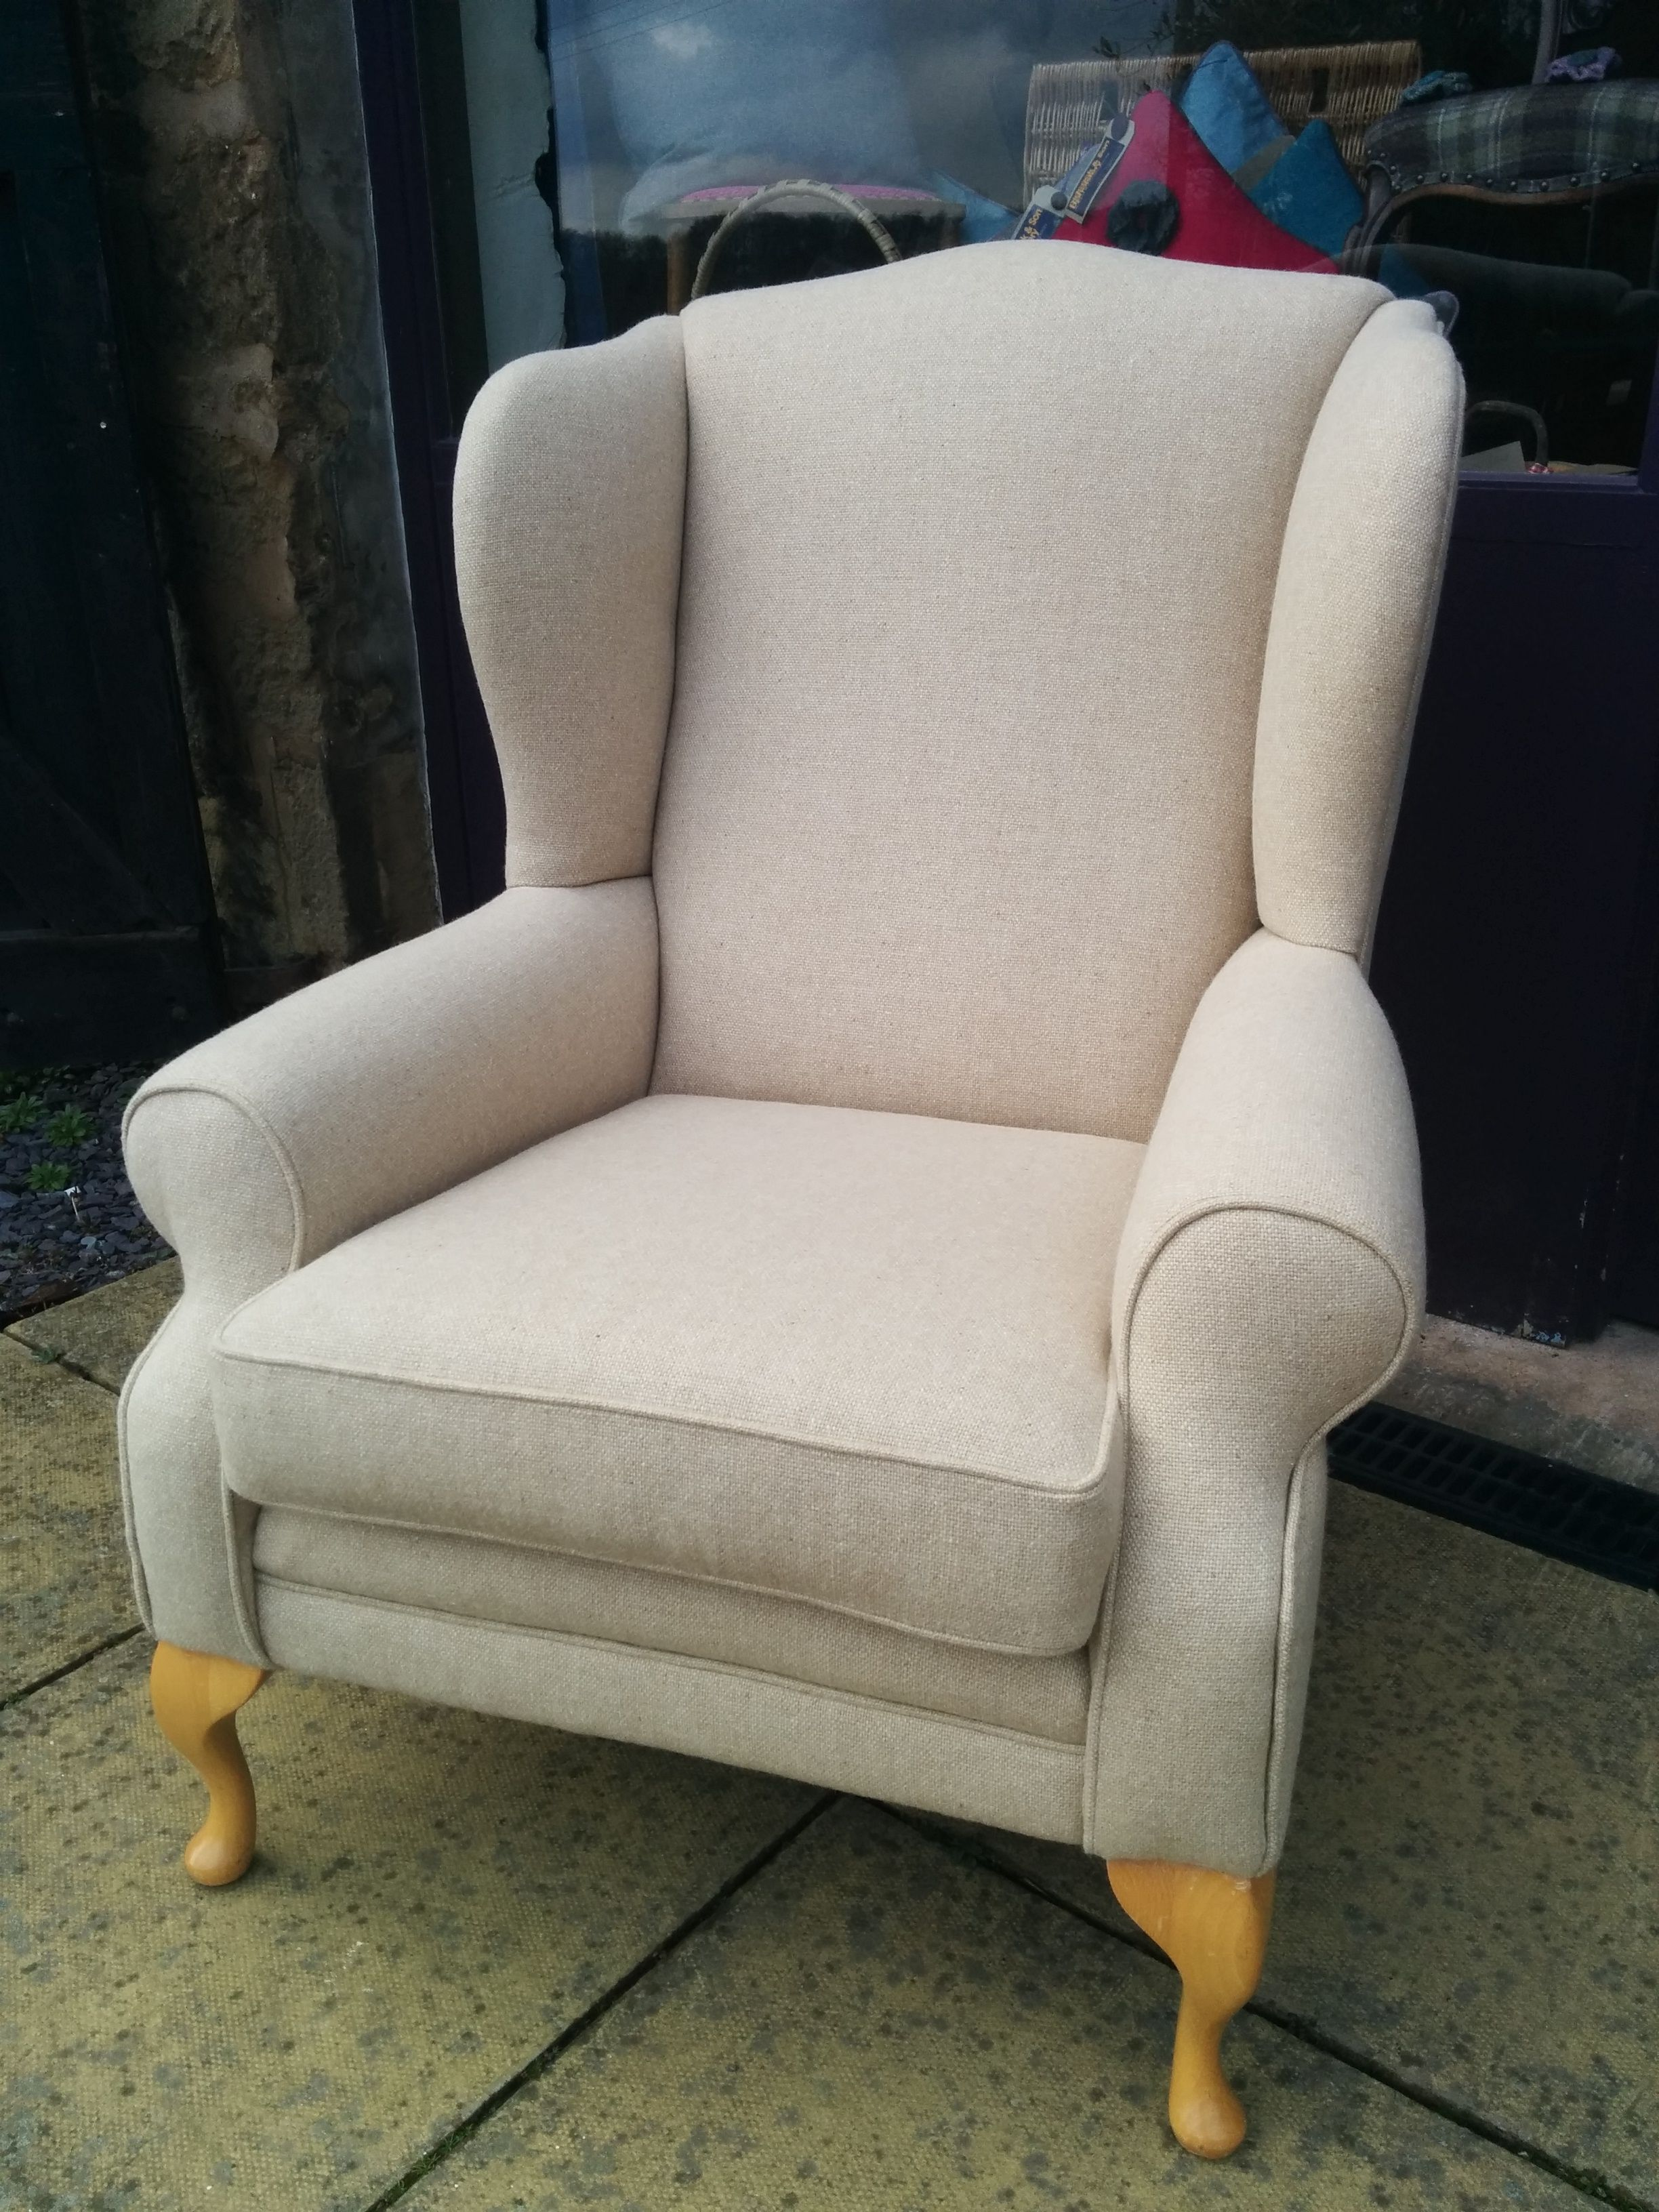 A beautiful old Parker Knoll chair reupholstered in Ross fabric